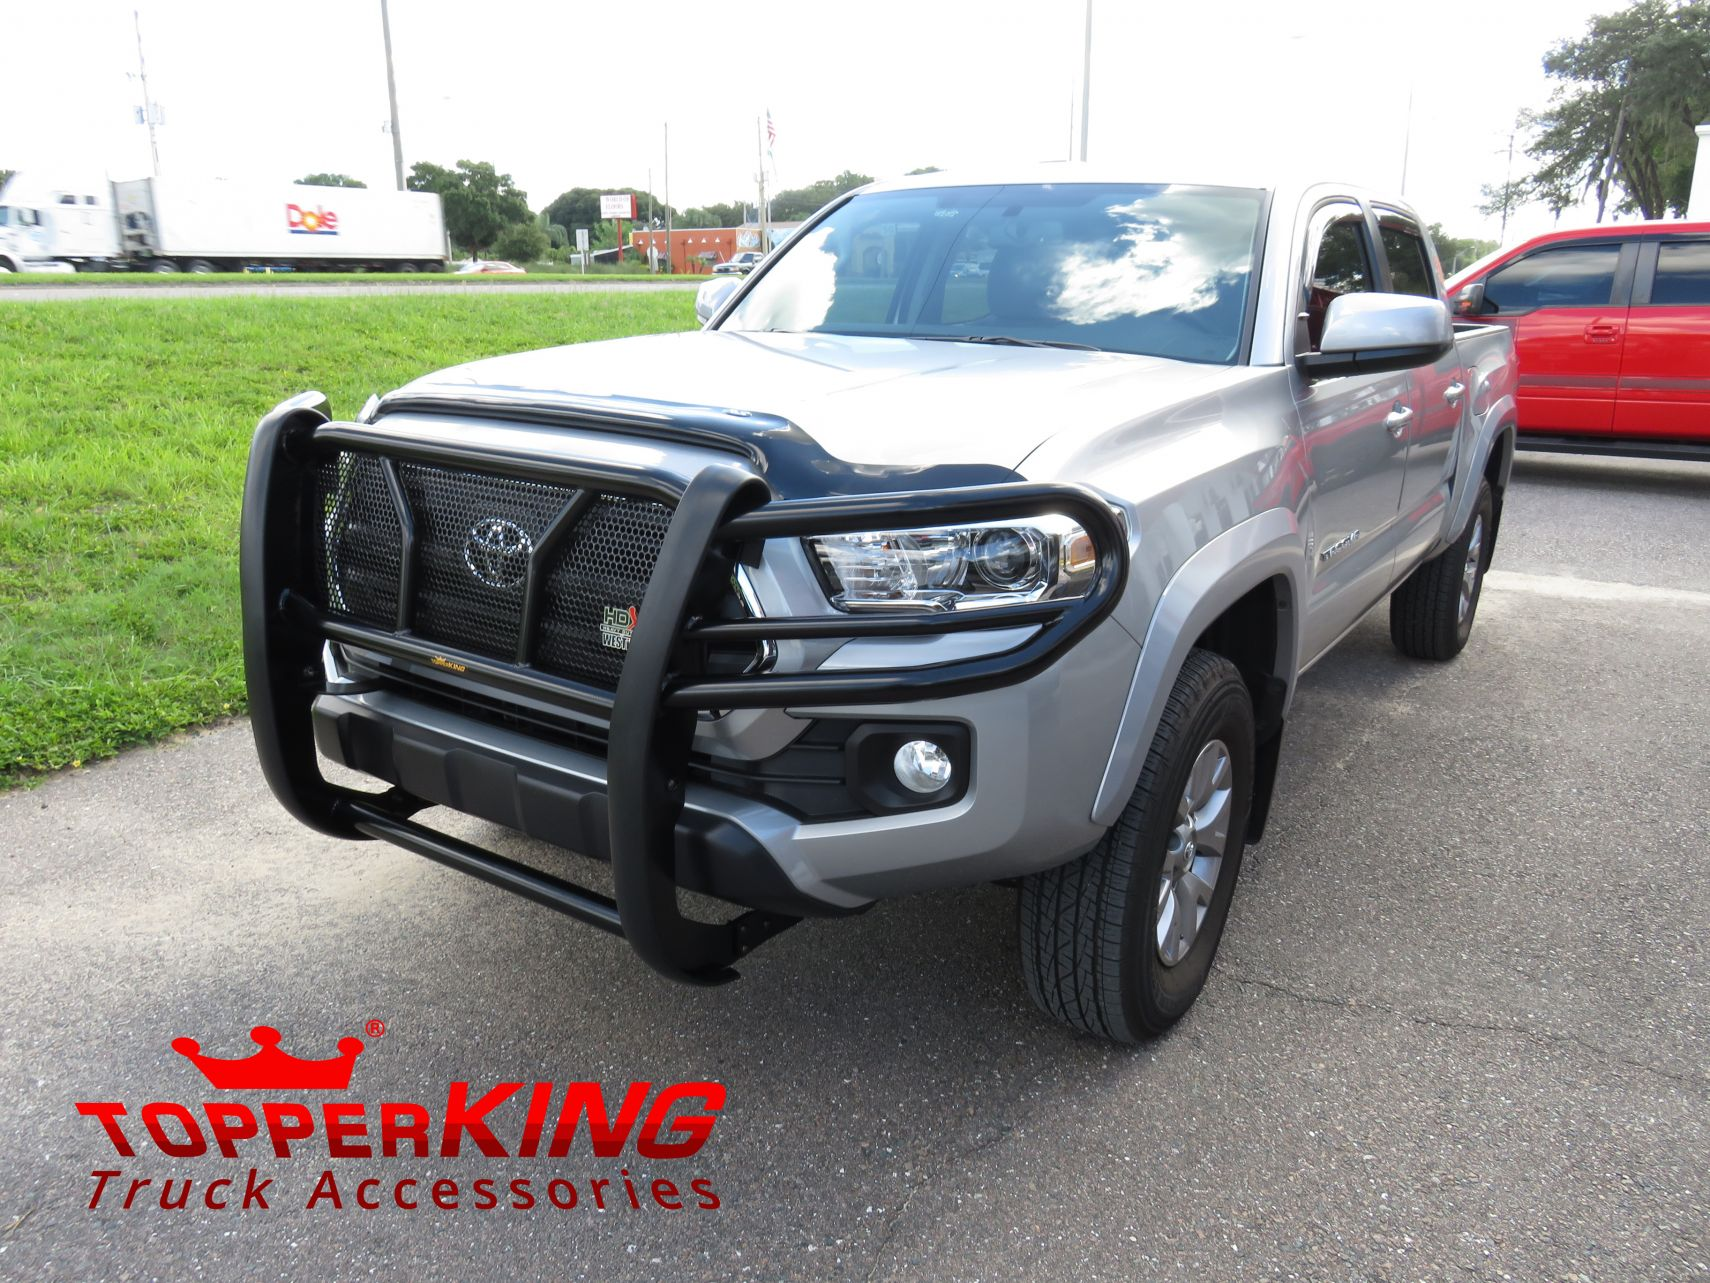 tacoma guard toyota westin grille grill truck topperking accessories hitch silver guards front